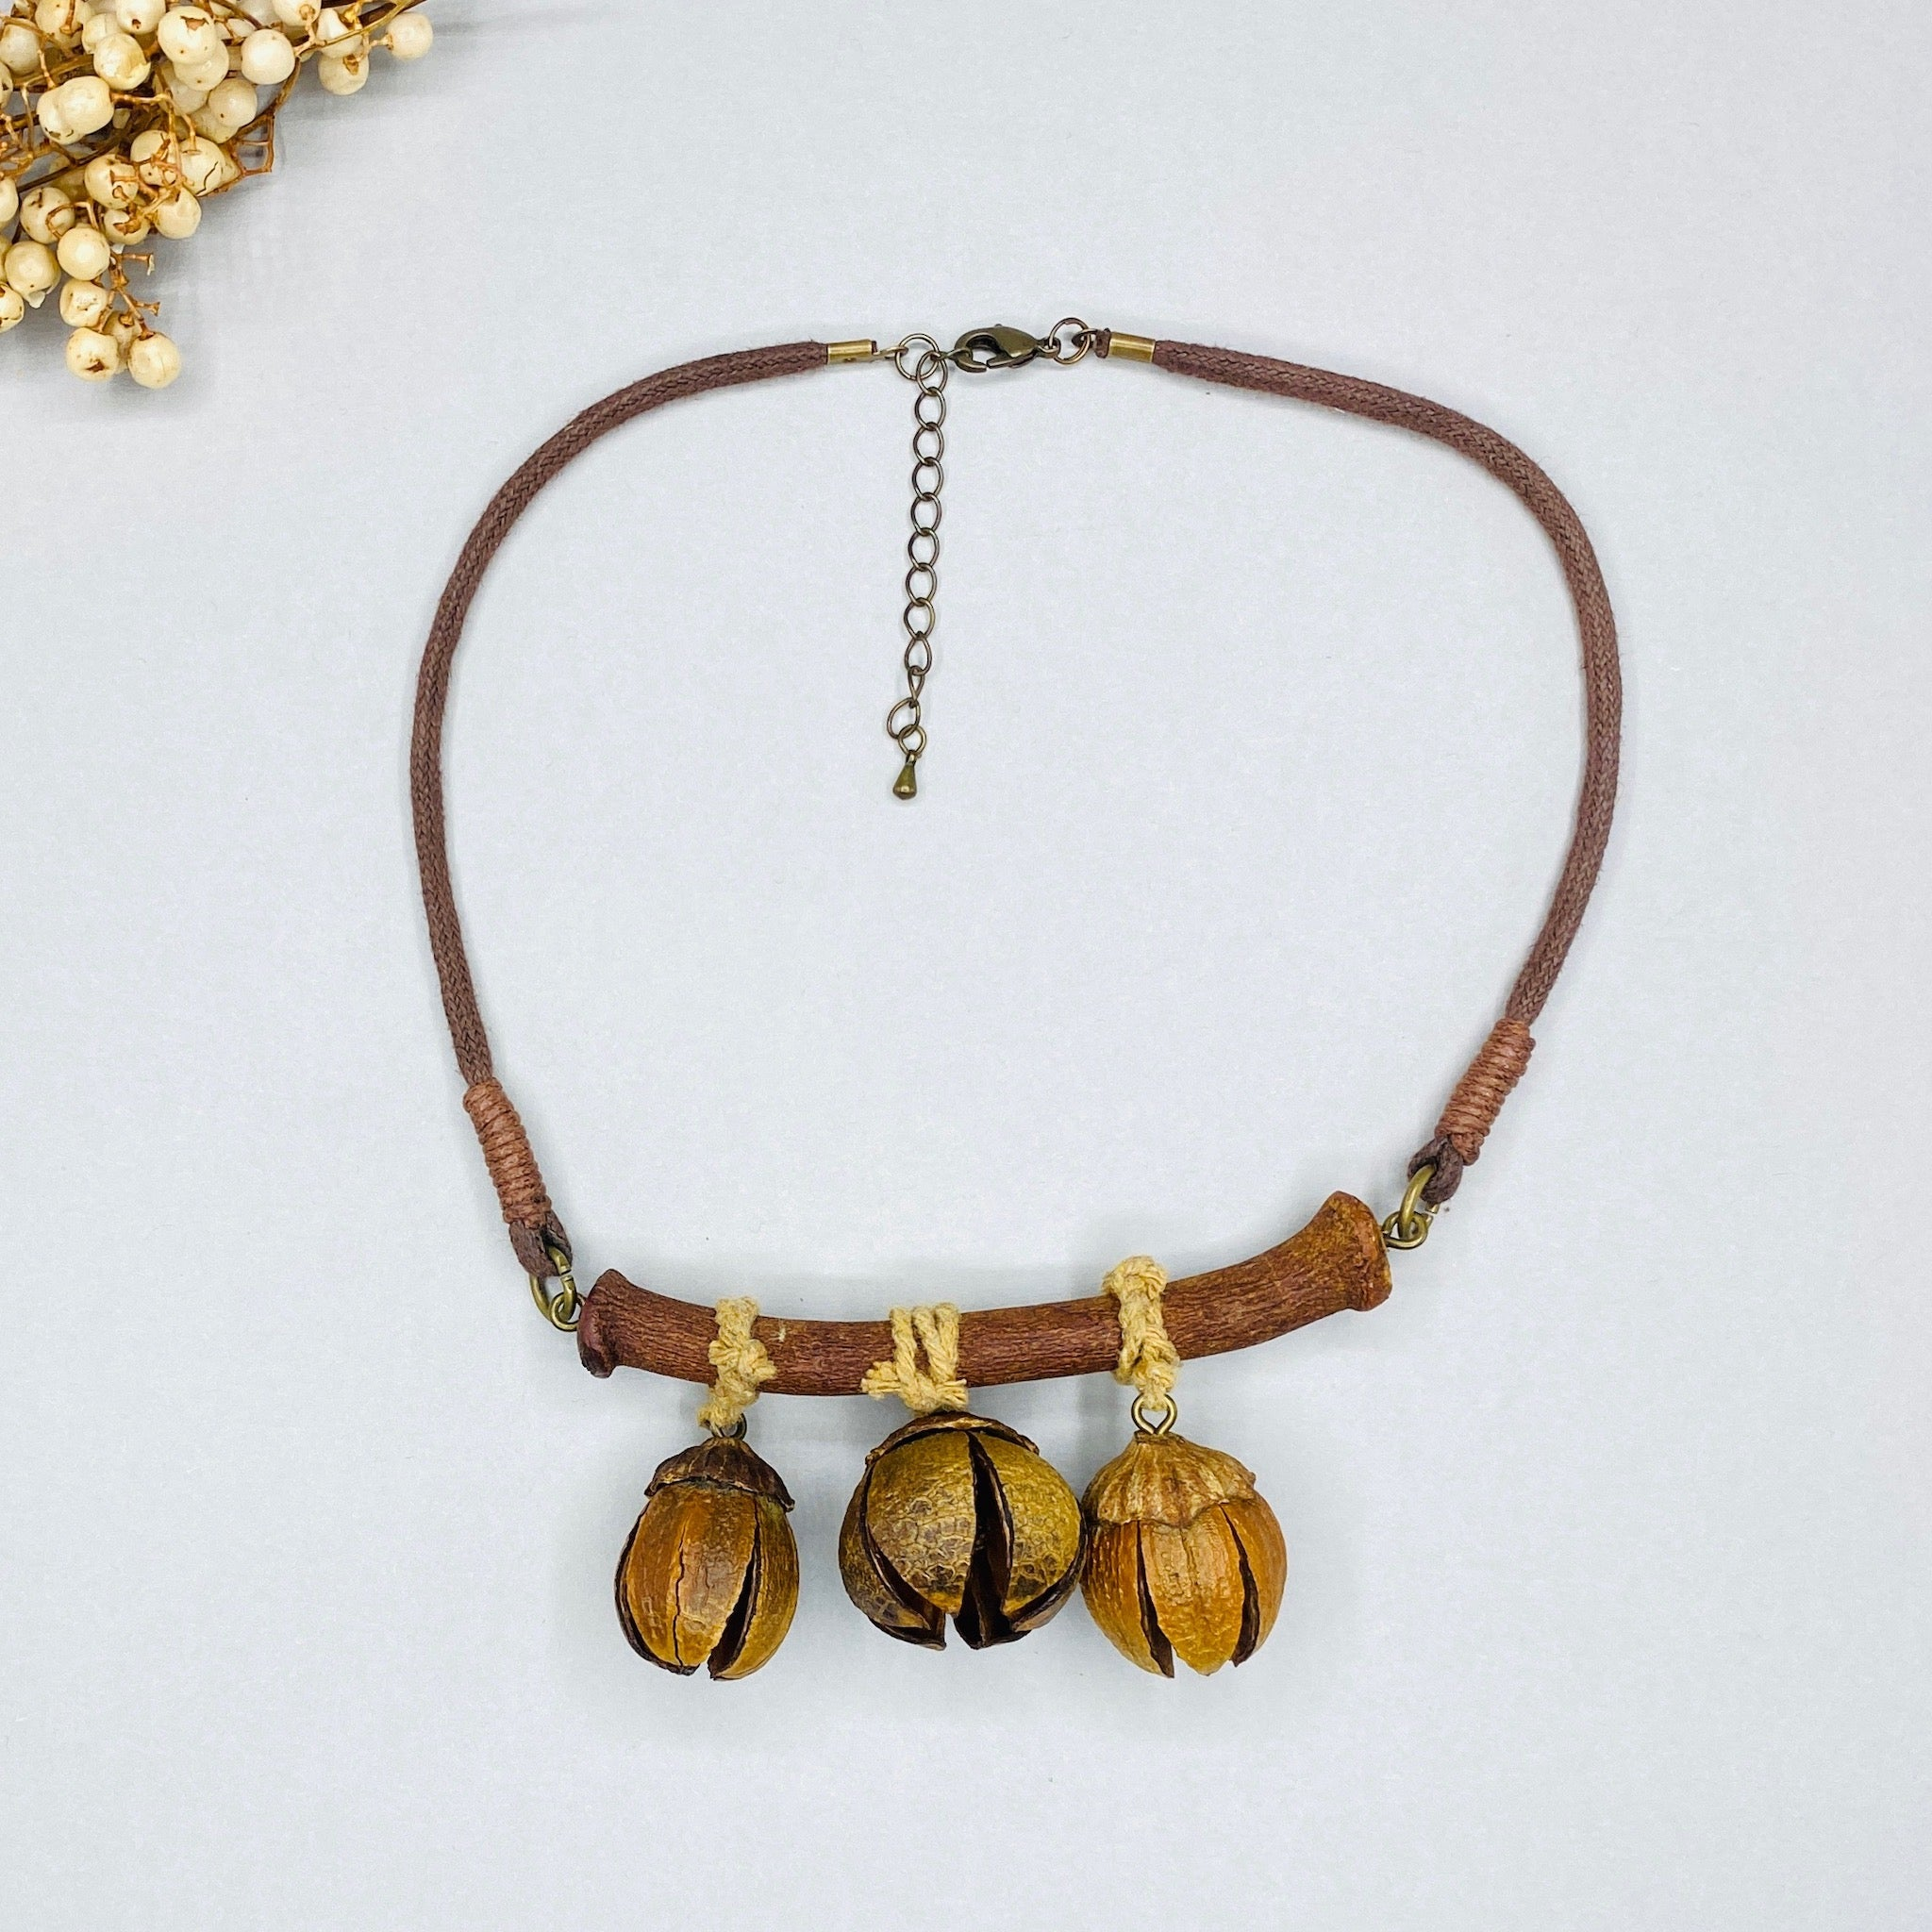 Queen Crape Myrtle Botanical Necklace - N á t t ú r a l